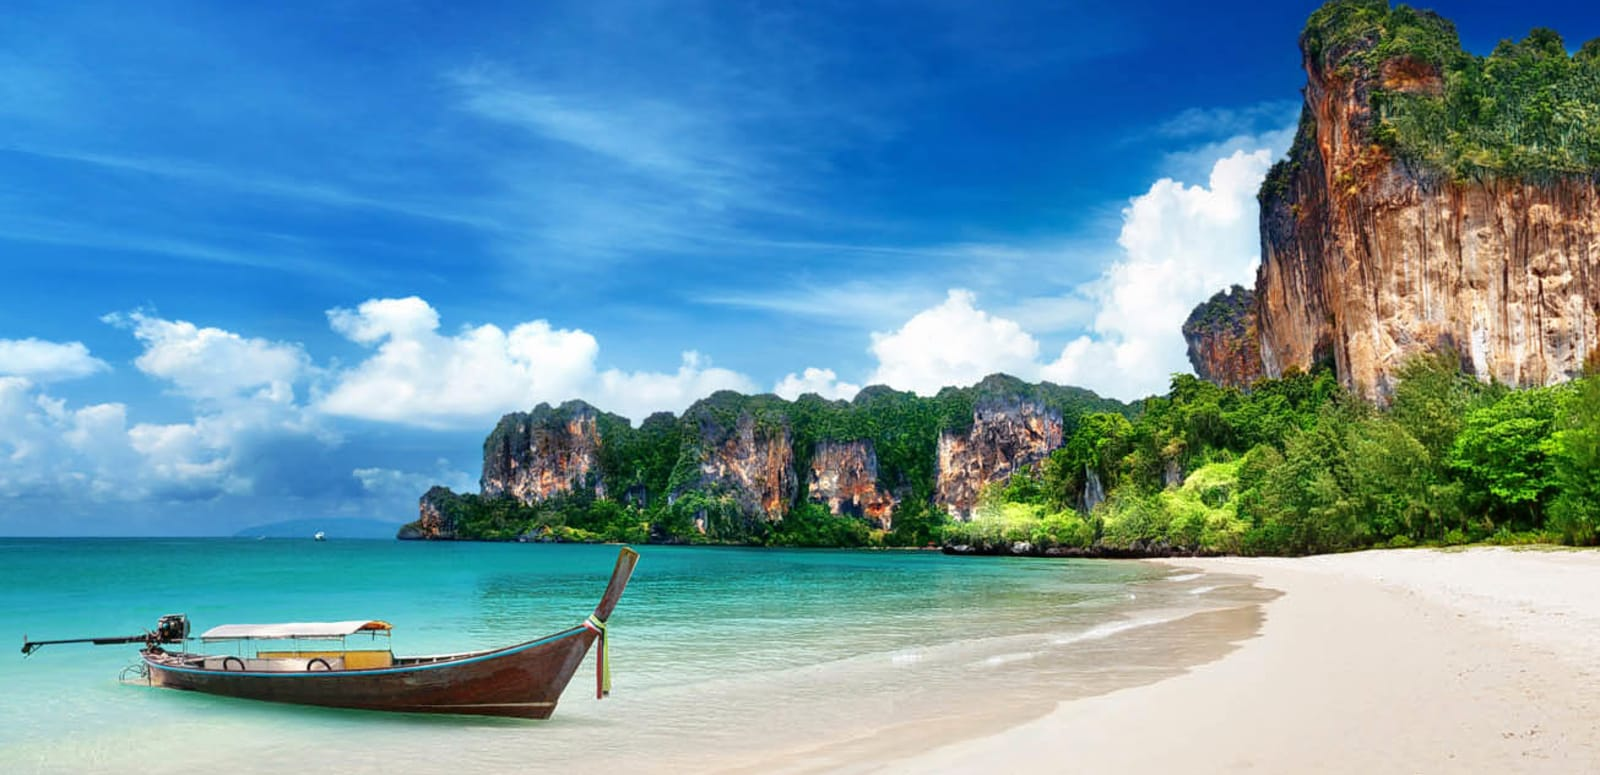 20 Best Thailand Beaches